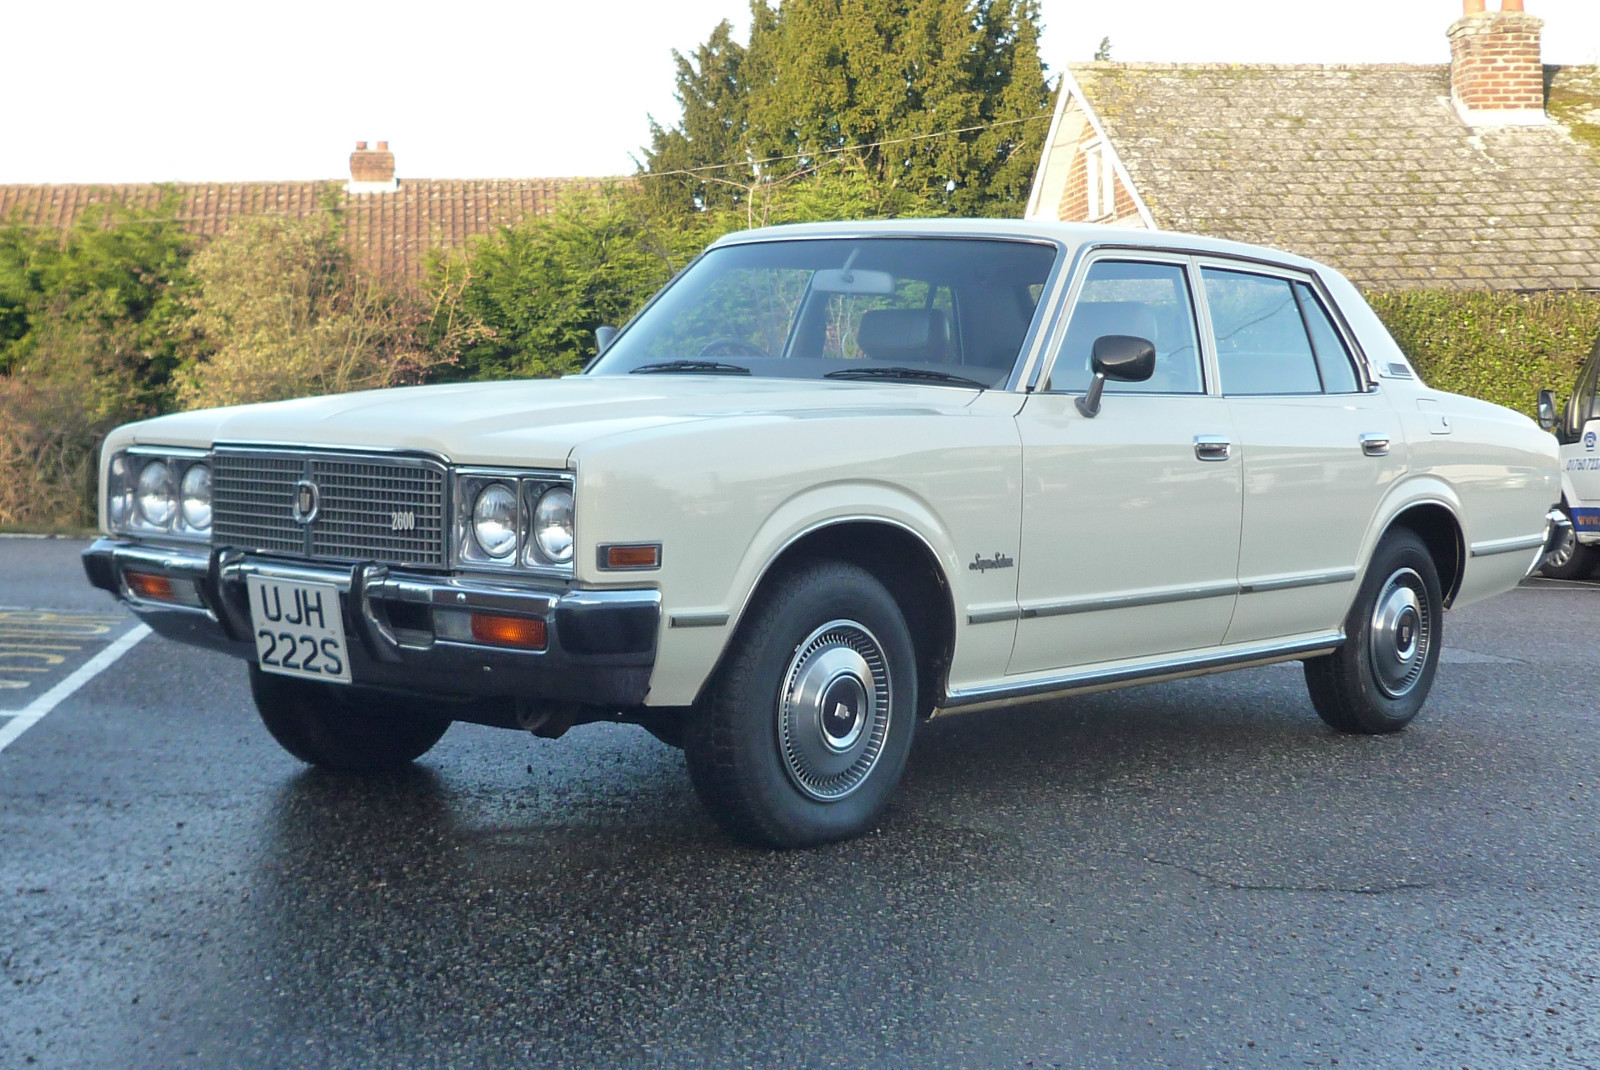 1978 Toyota Crown - BestCarMag.com